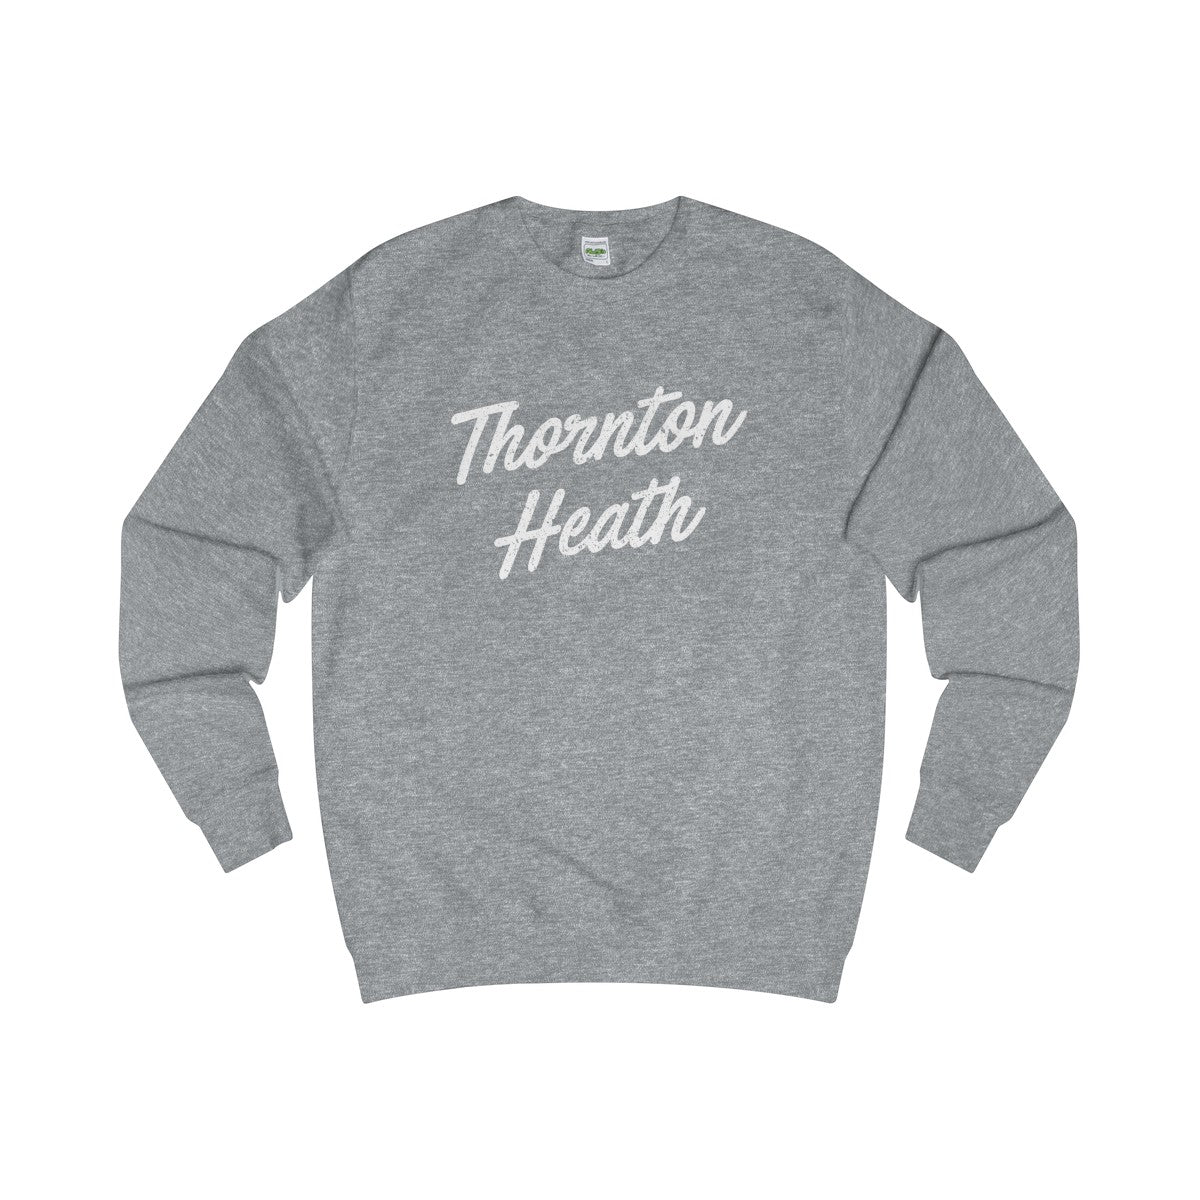 Thornton Heath Scripted Sweater